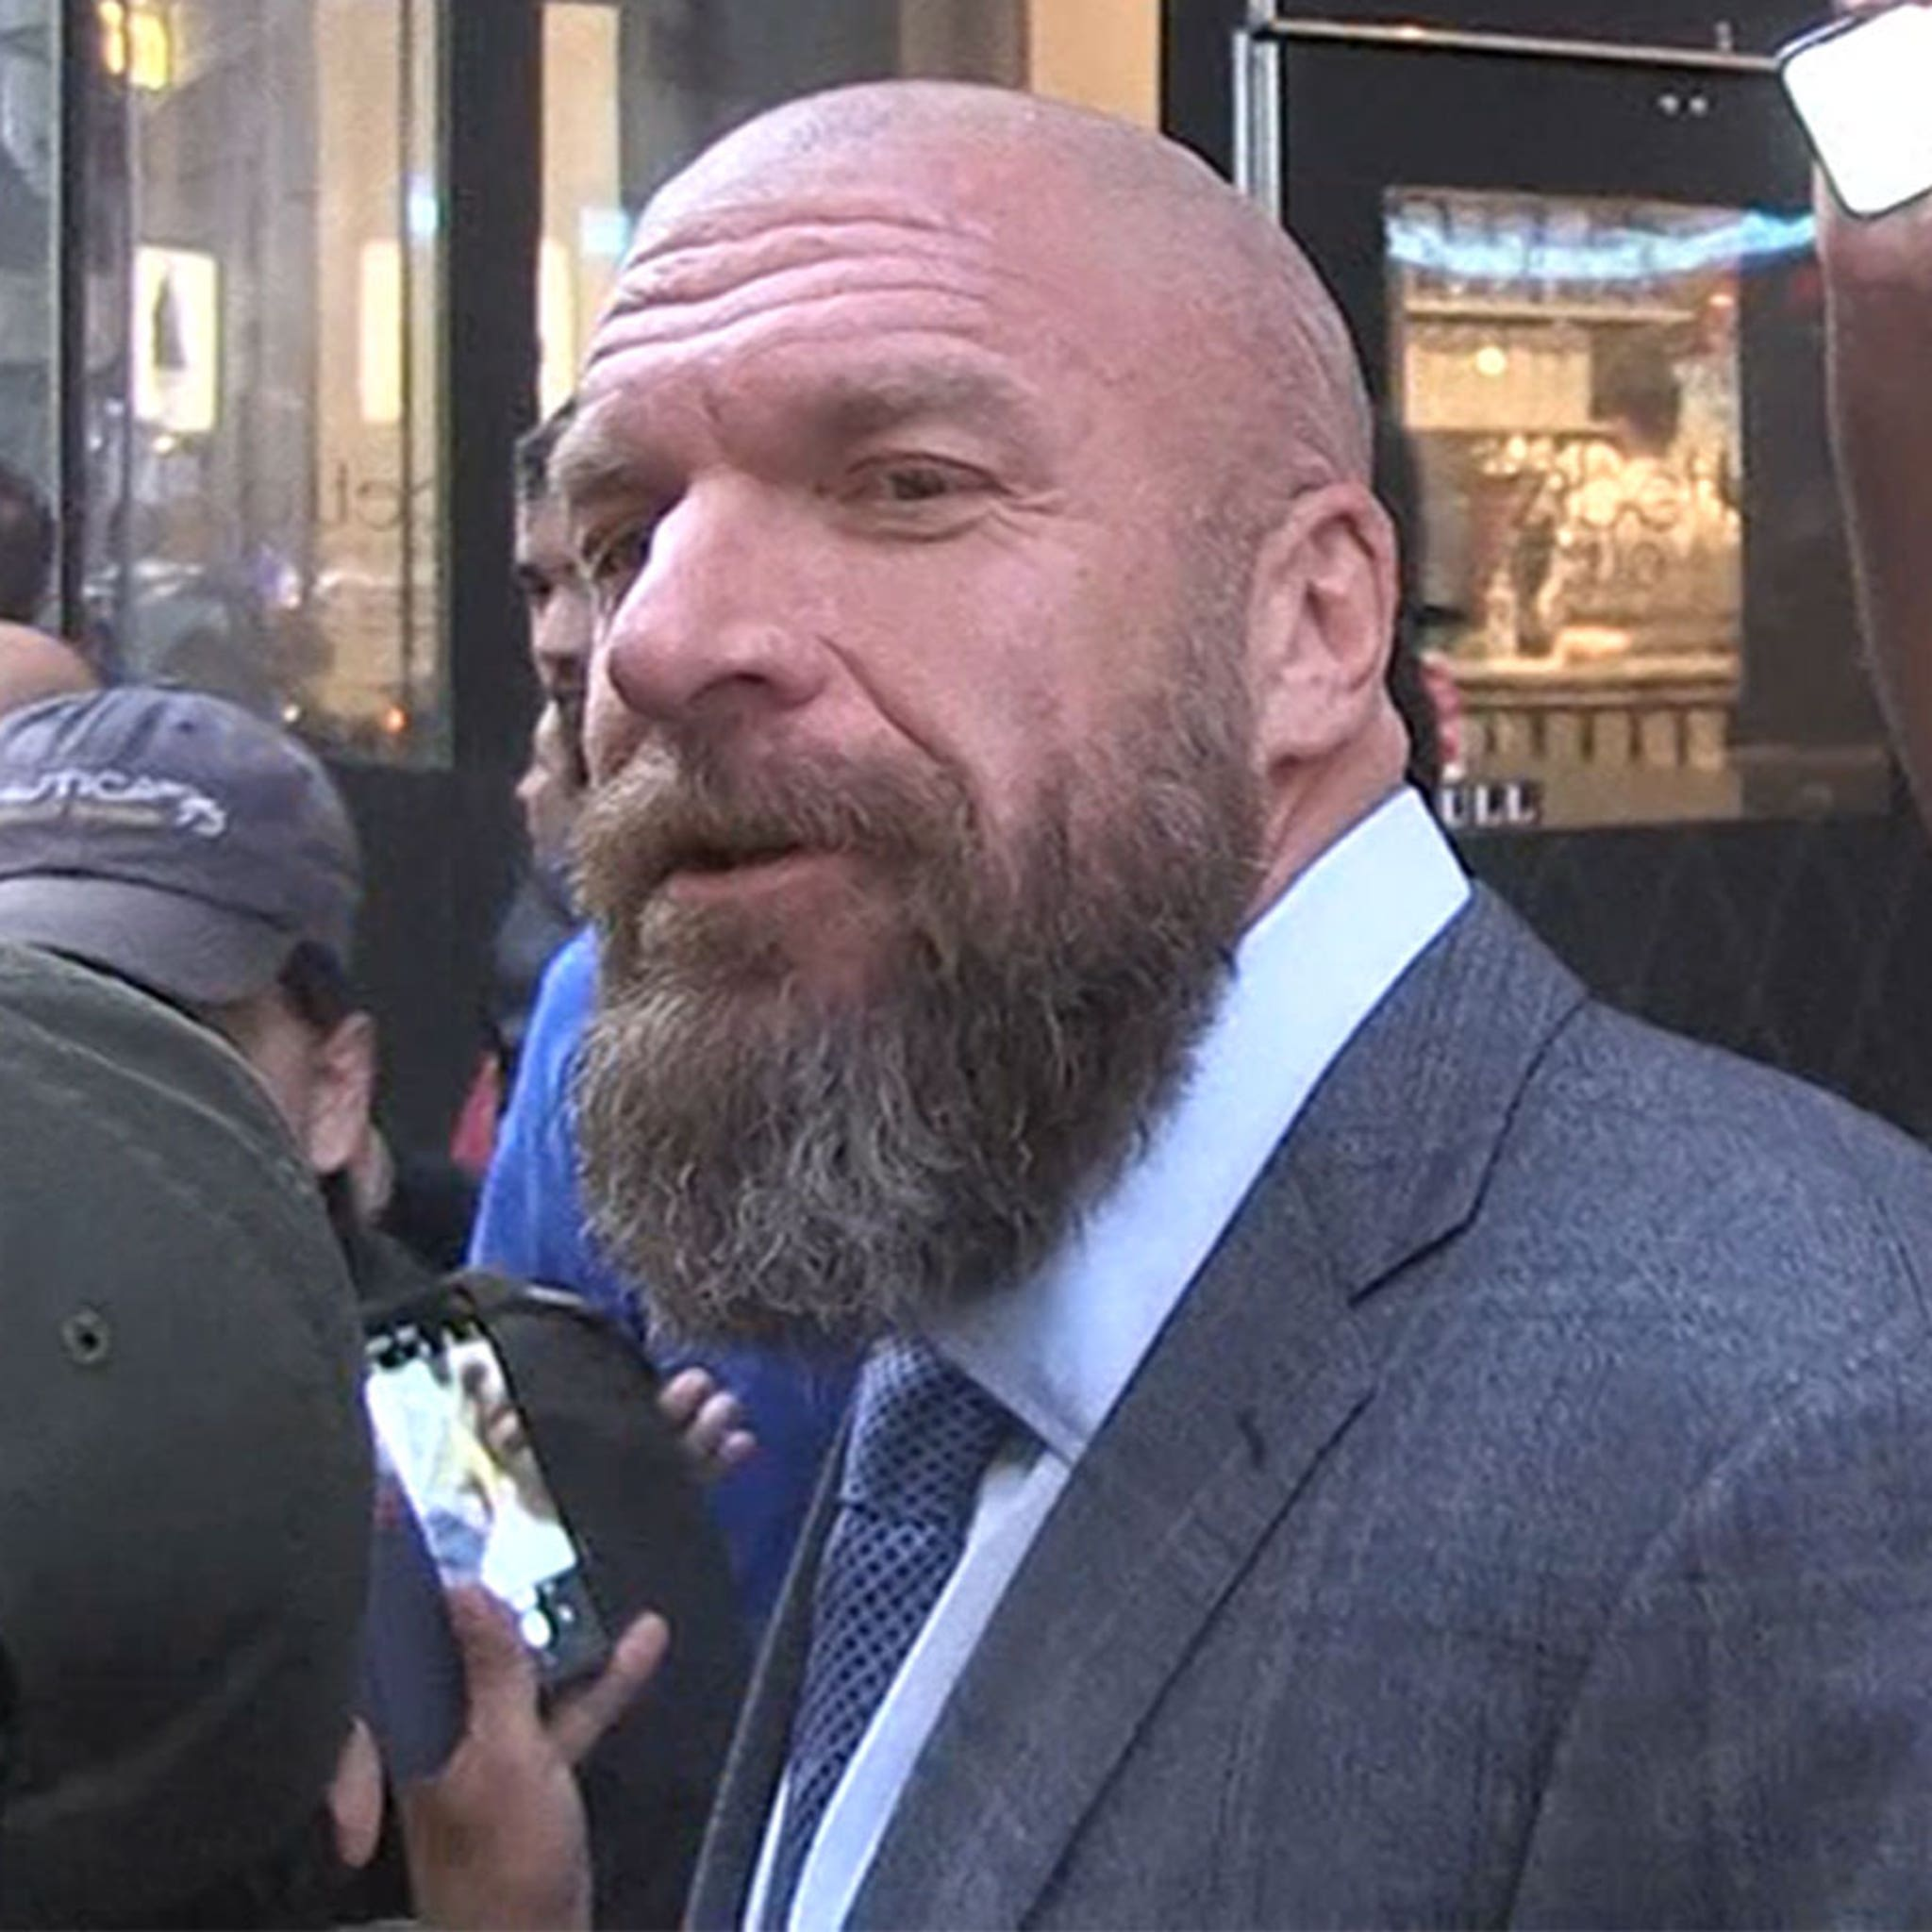 WWE's Triple H Says 'Ronda Rousey Will Be Back'